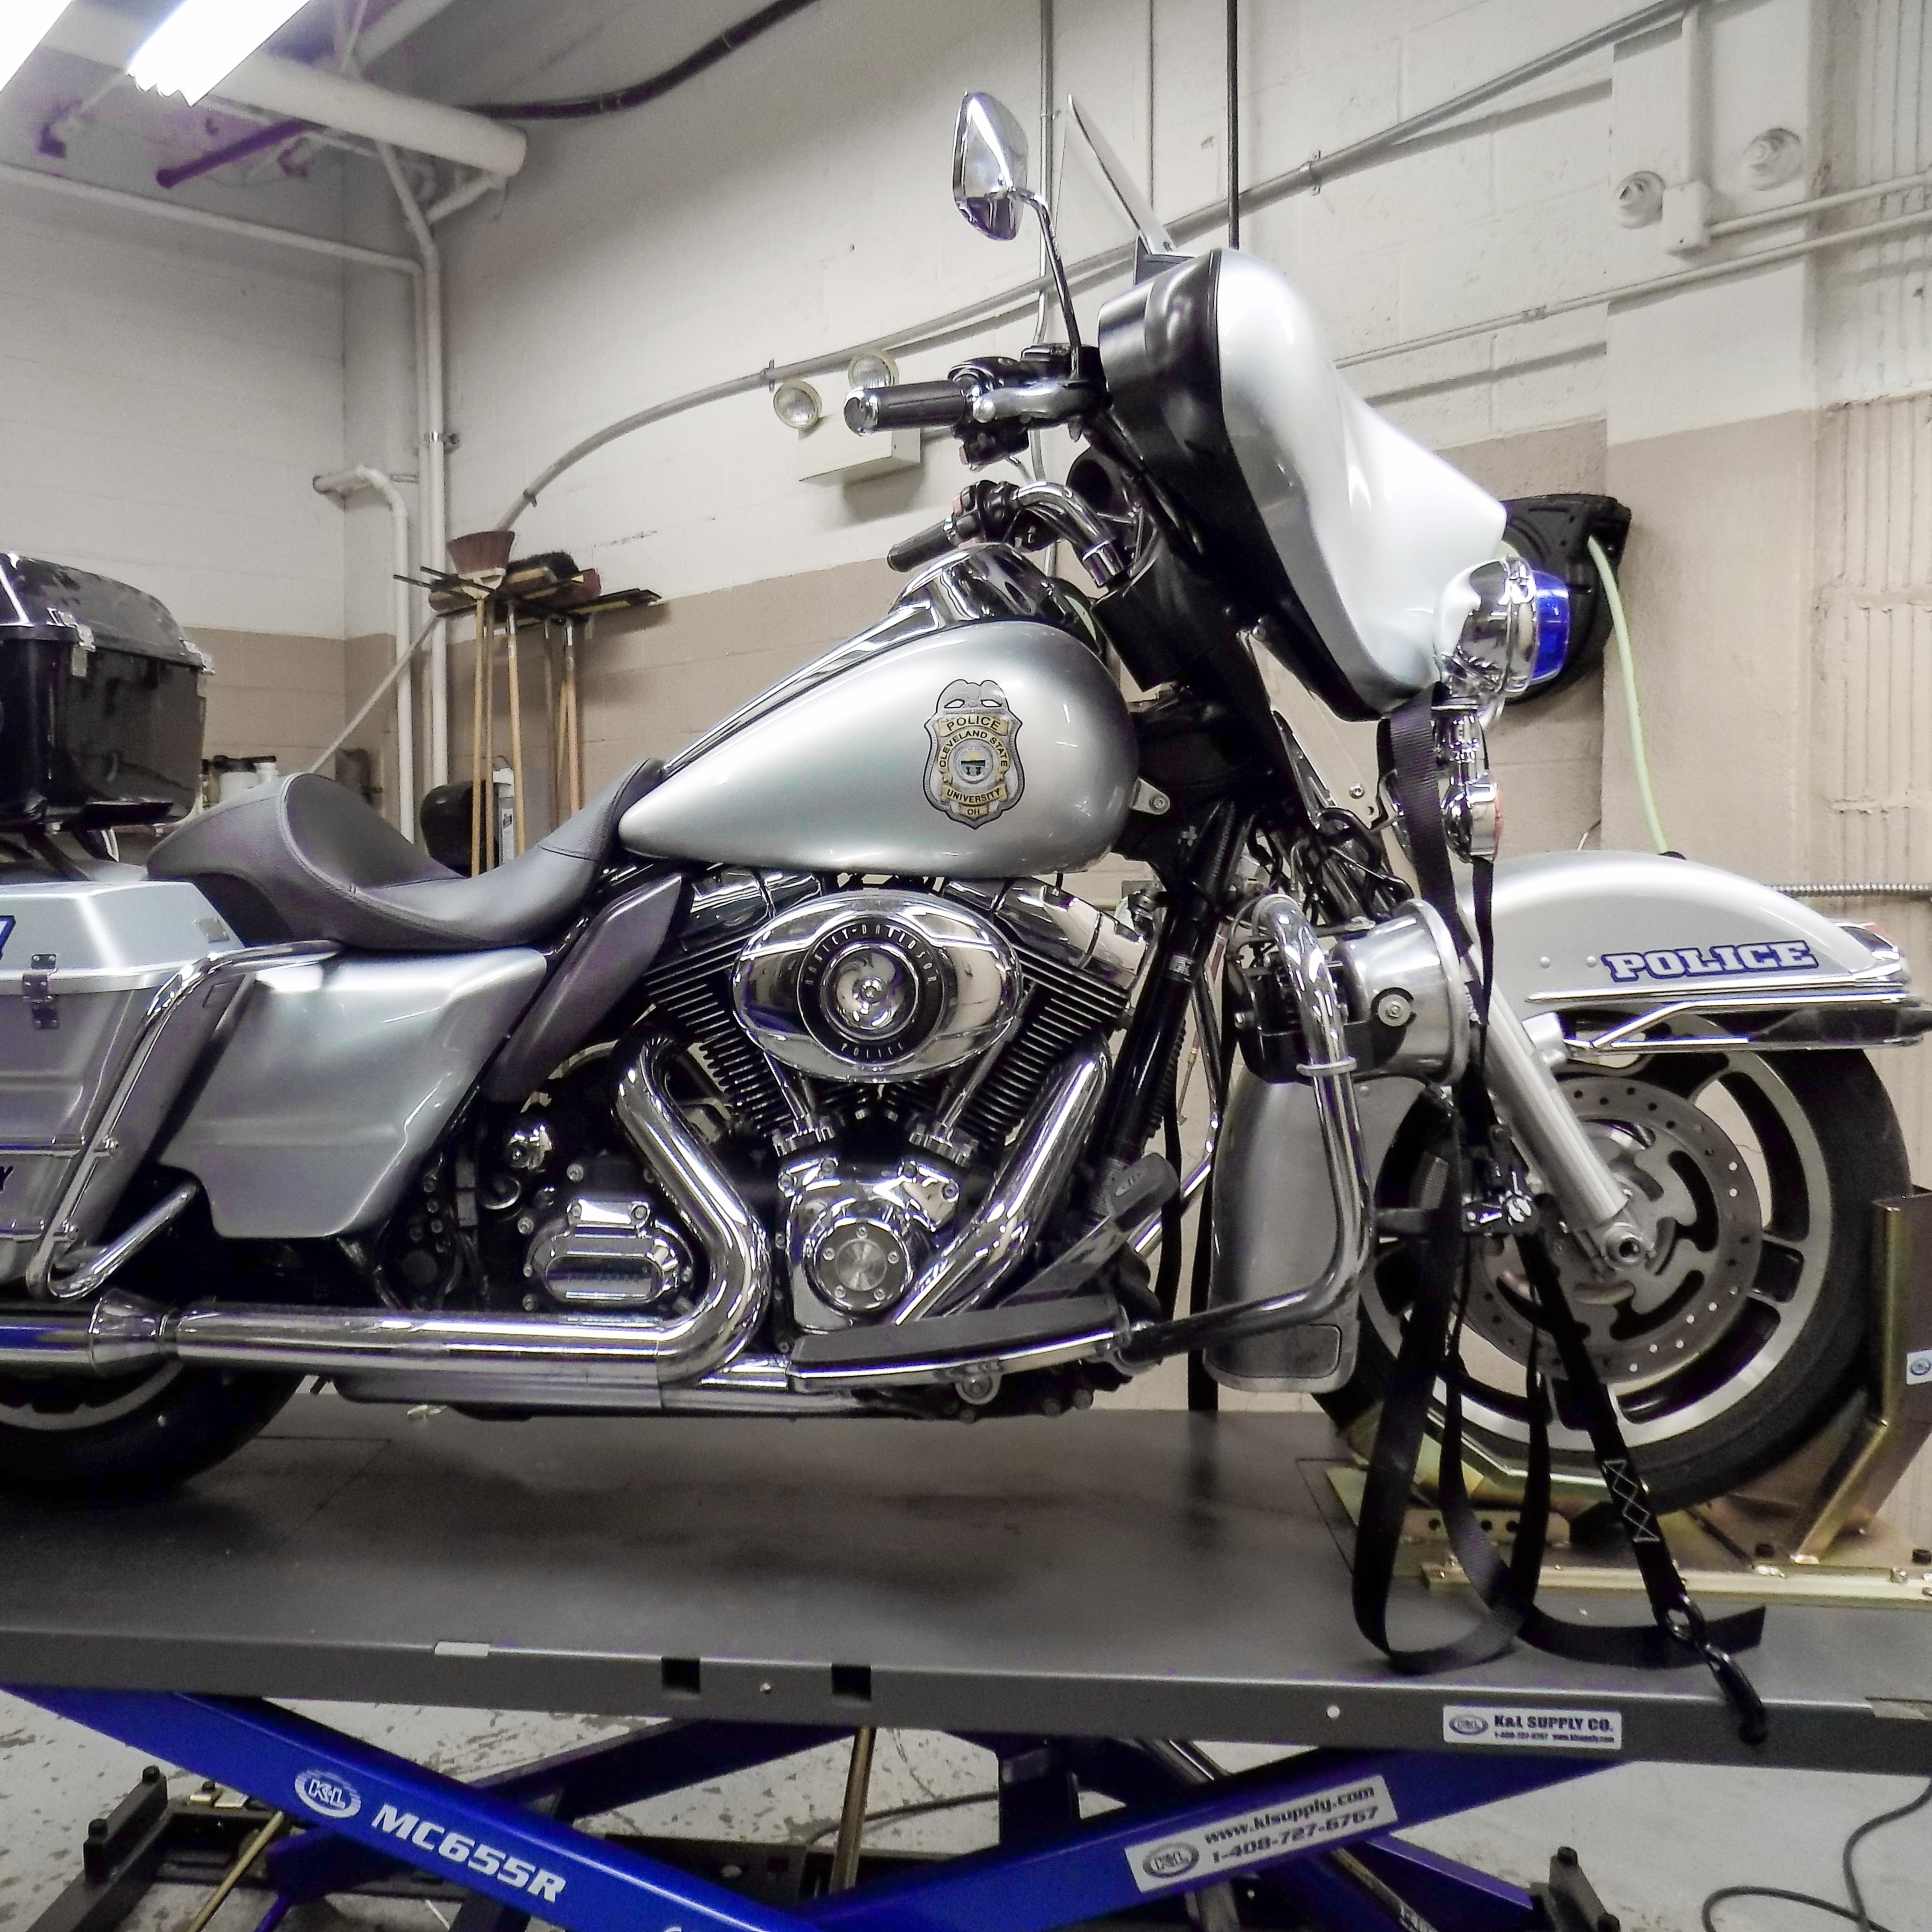 Motorcycle Being Worked On